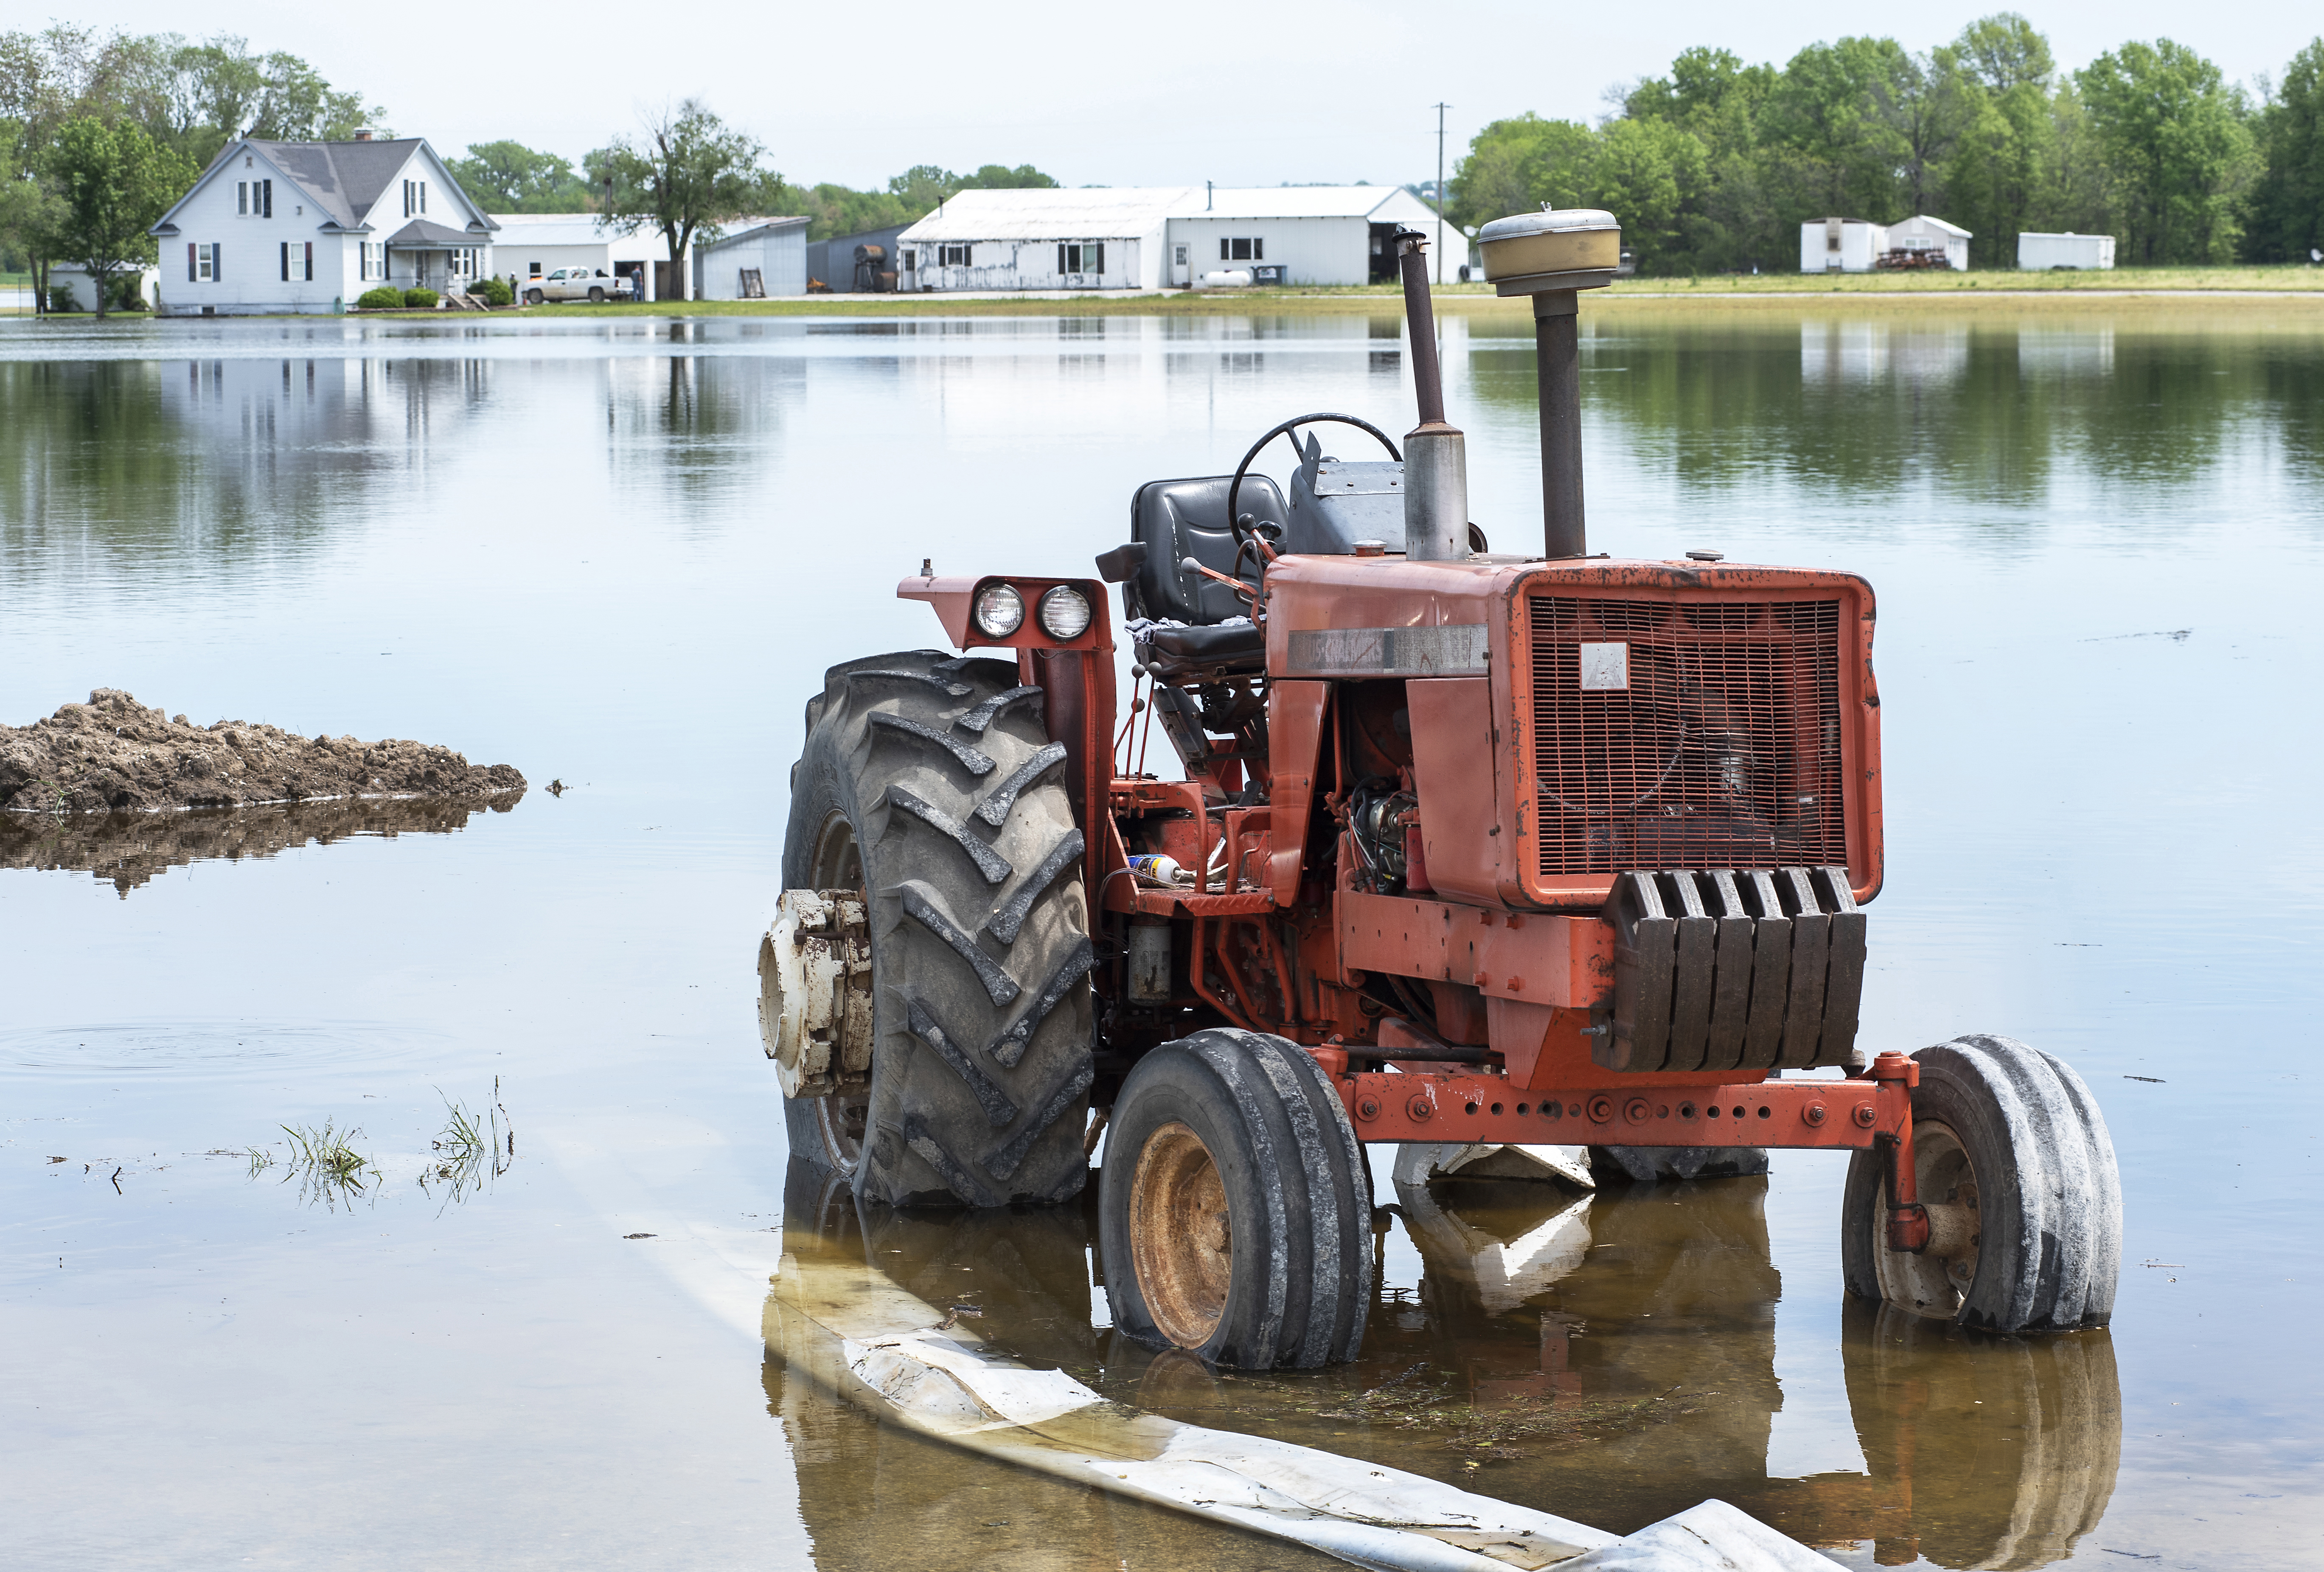 Tractor stranded in Mississippi River flood waters off Highway 79 in Winfield, MO, north of St. Louis on May 5, 2019.